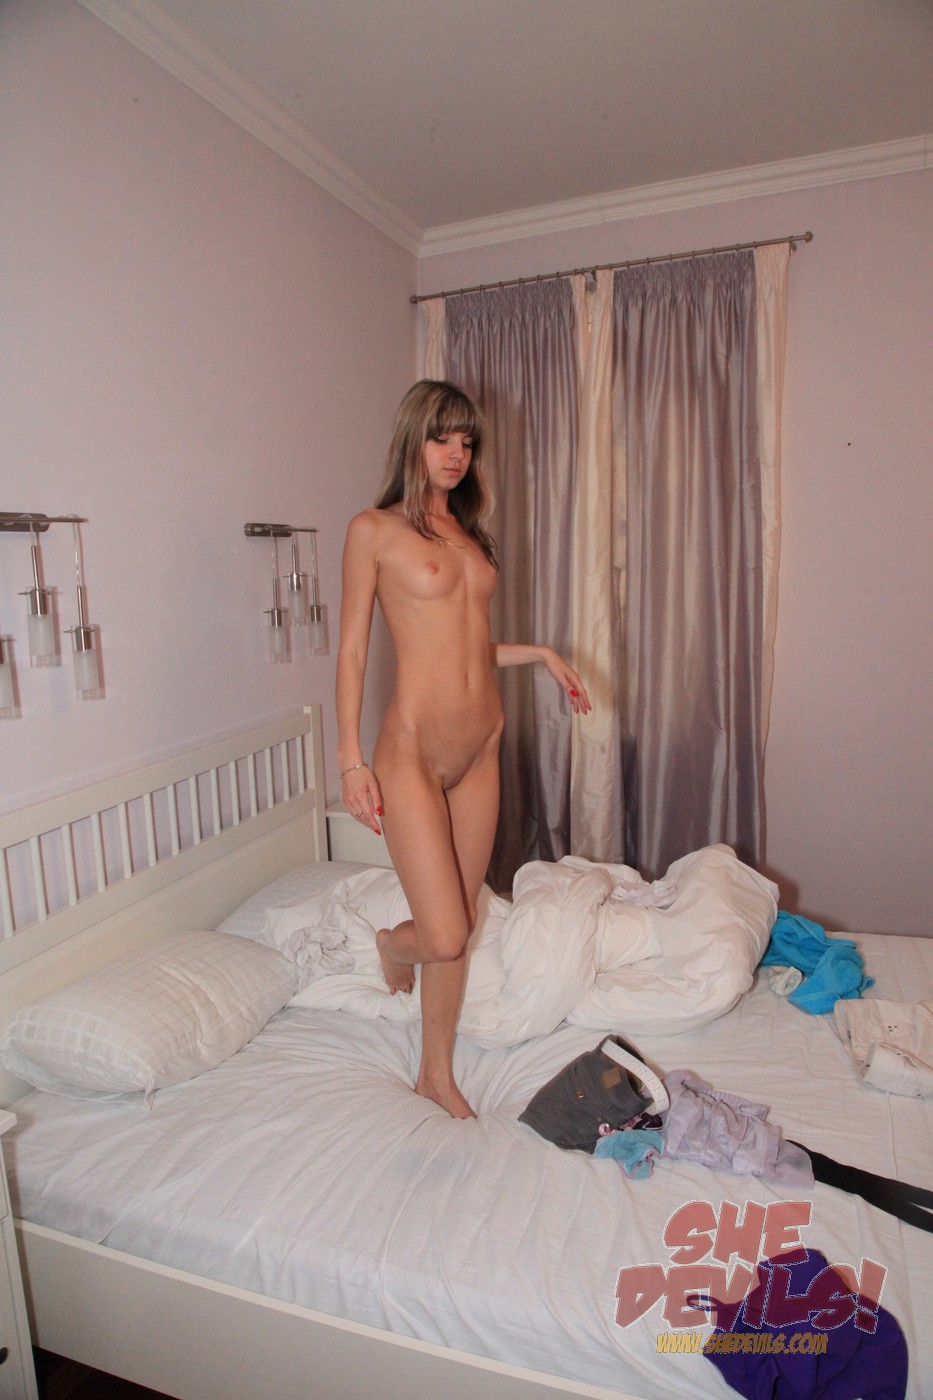 layla wwe nude picture